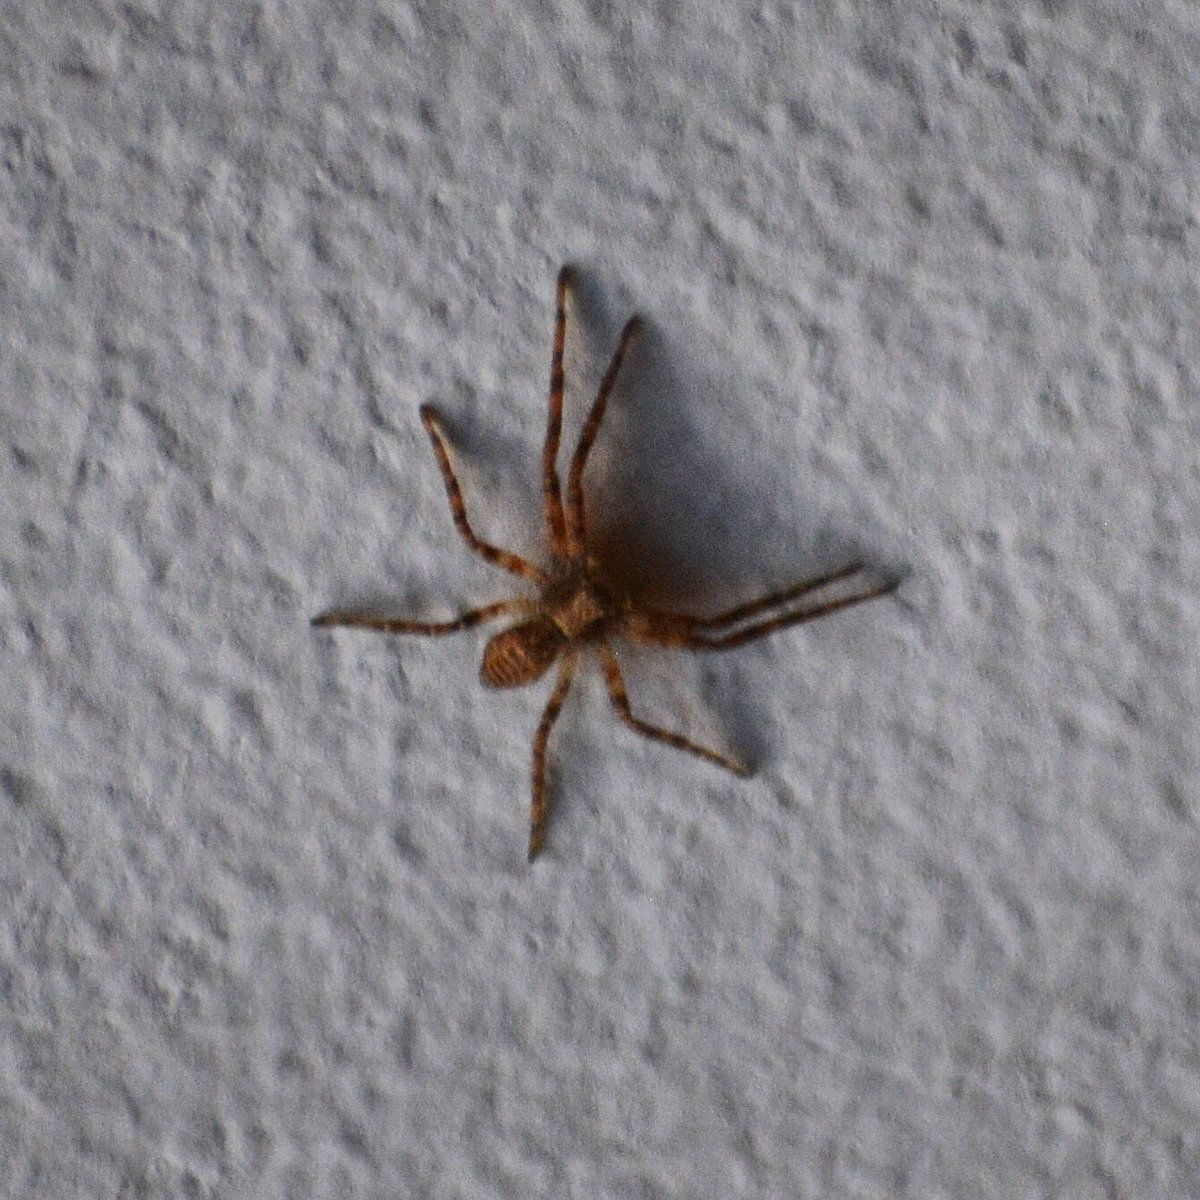 """brian wagner on twitter: """"tiny spider on the ceiling. #shiver"""